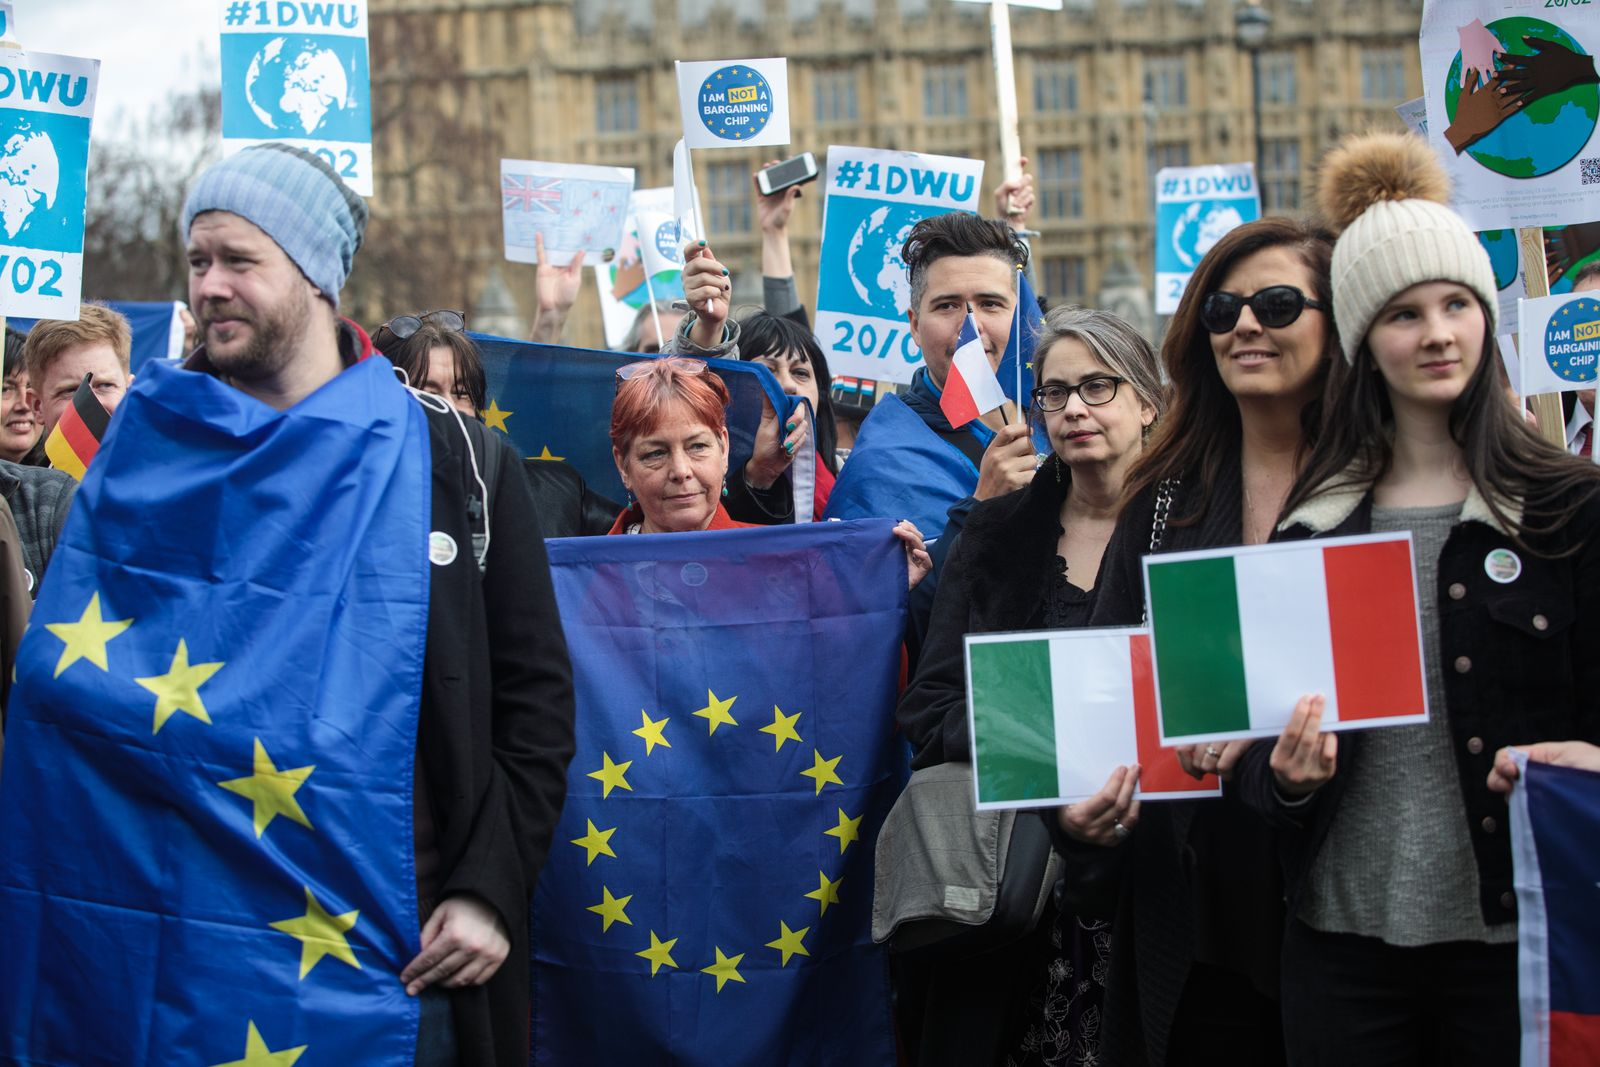 One Day Without Them Demonstration Takes Place In Westminster